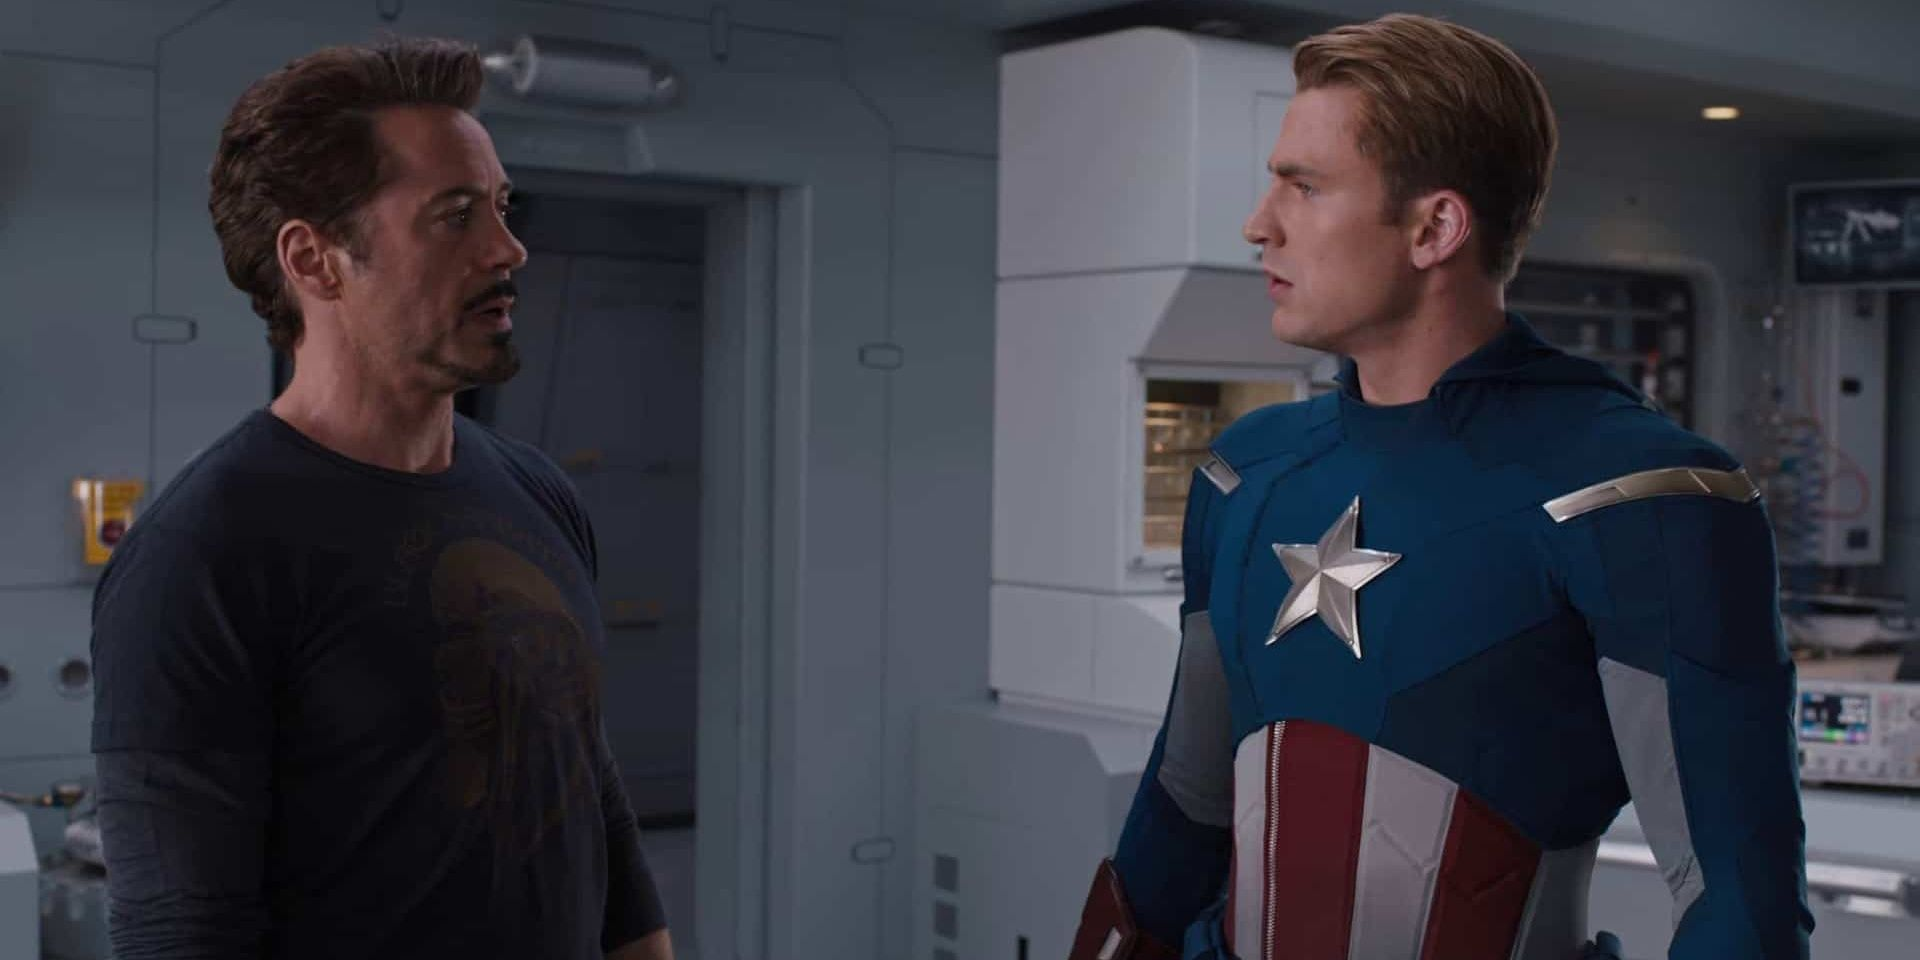 This Exchange In The Avengers Hinted At Endgame Events